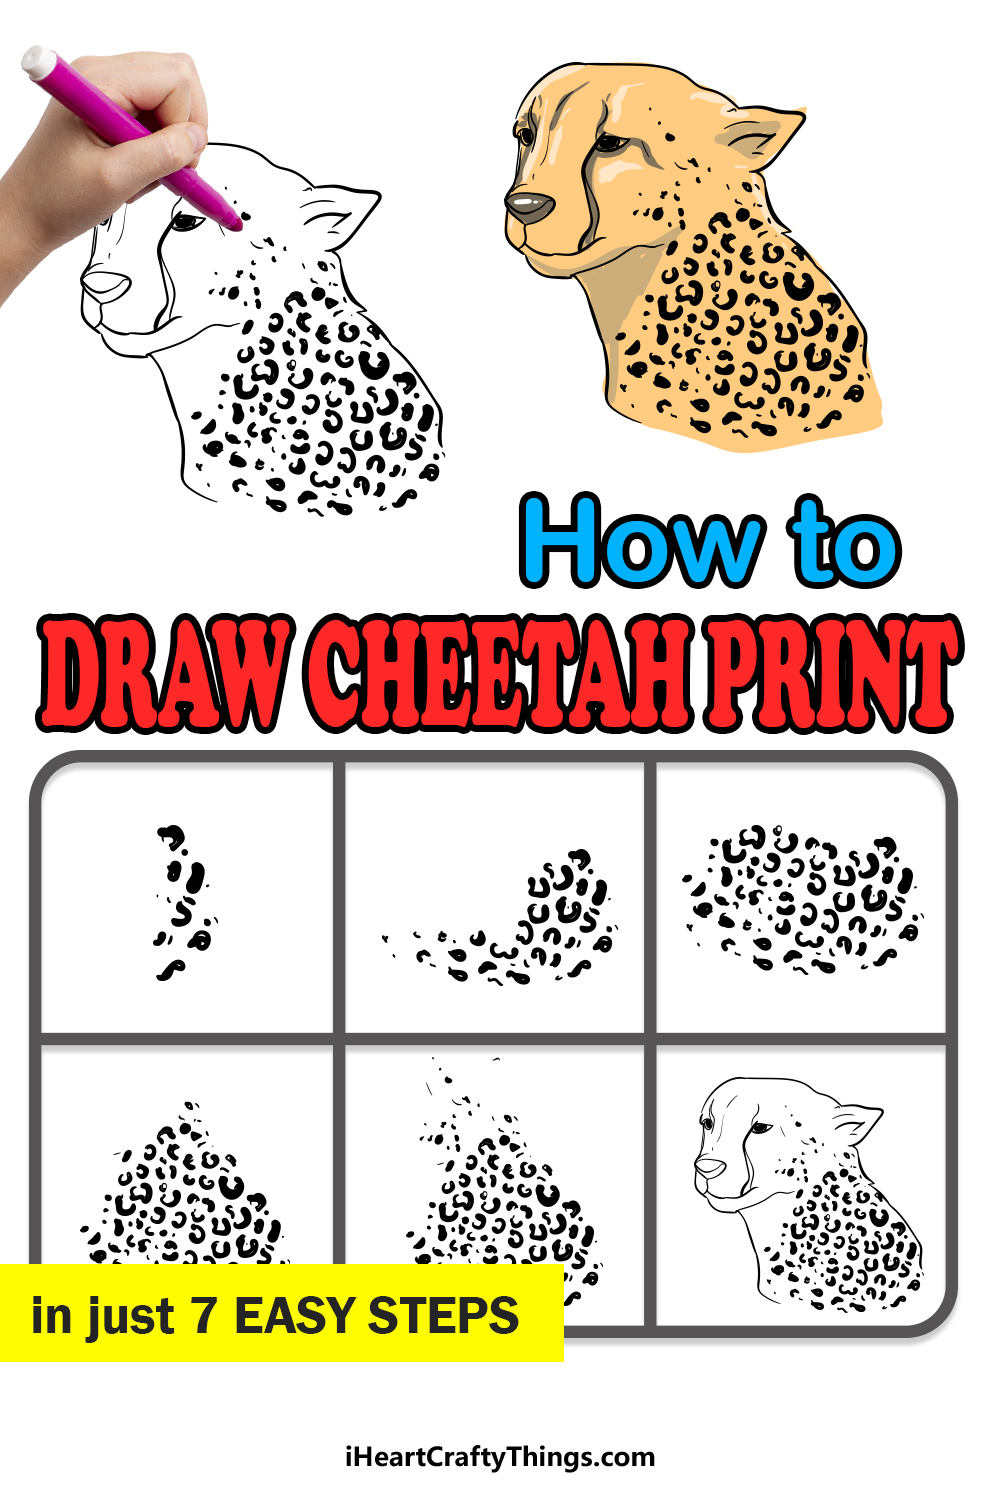 how to draw cheetah print in 7 easy steps